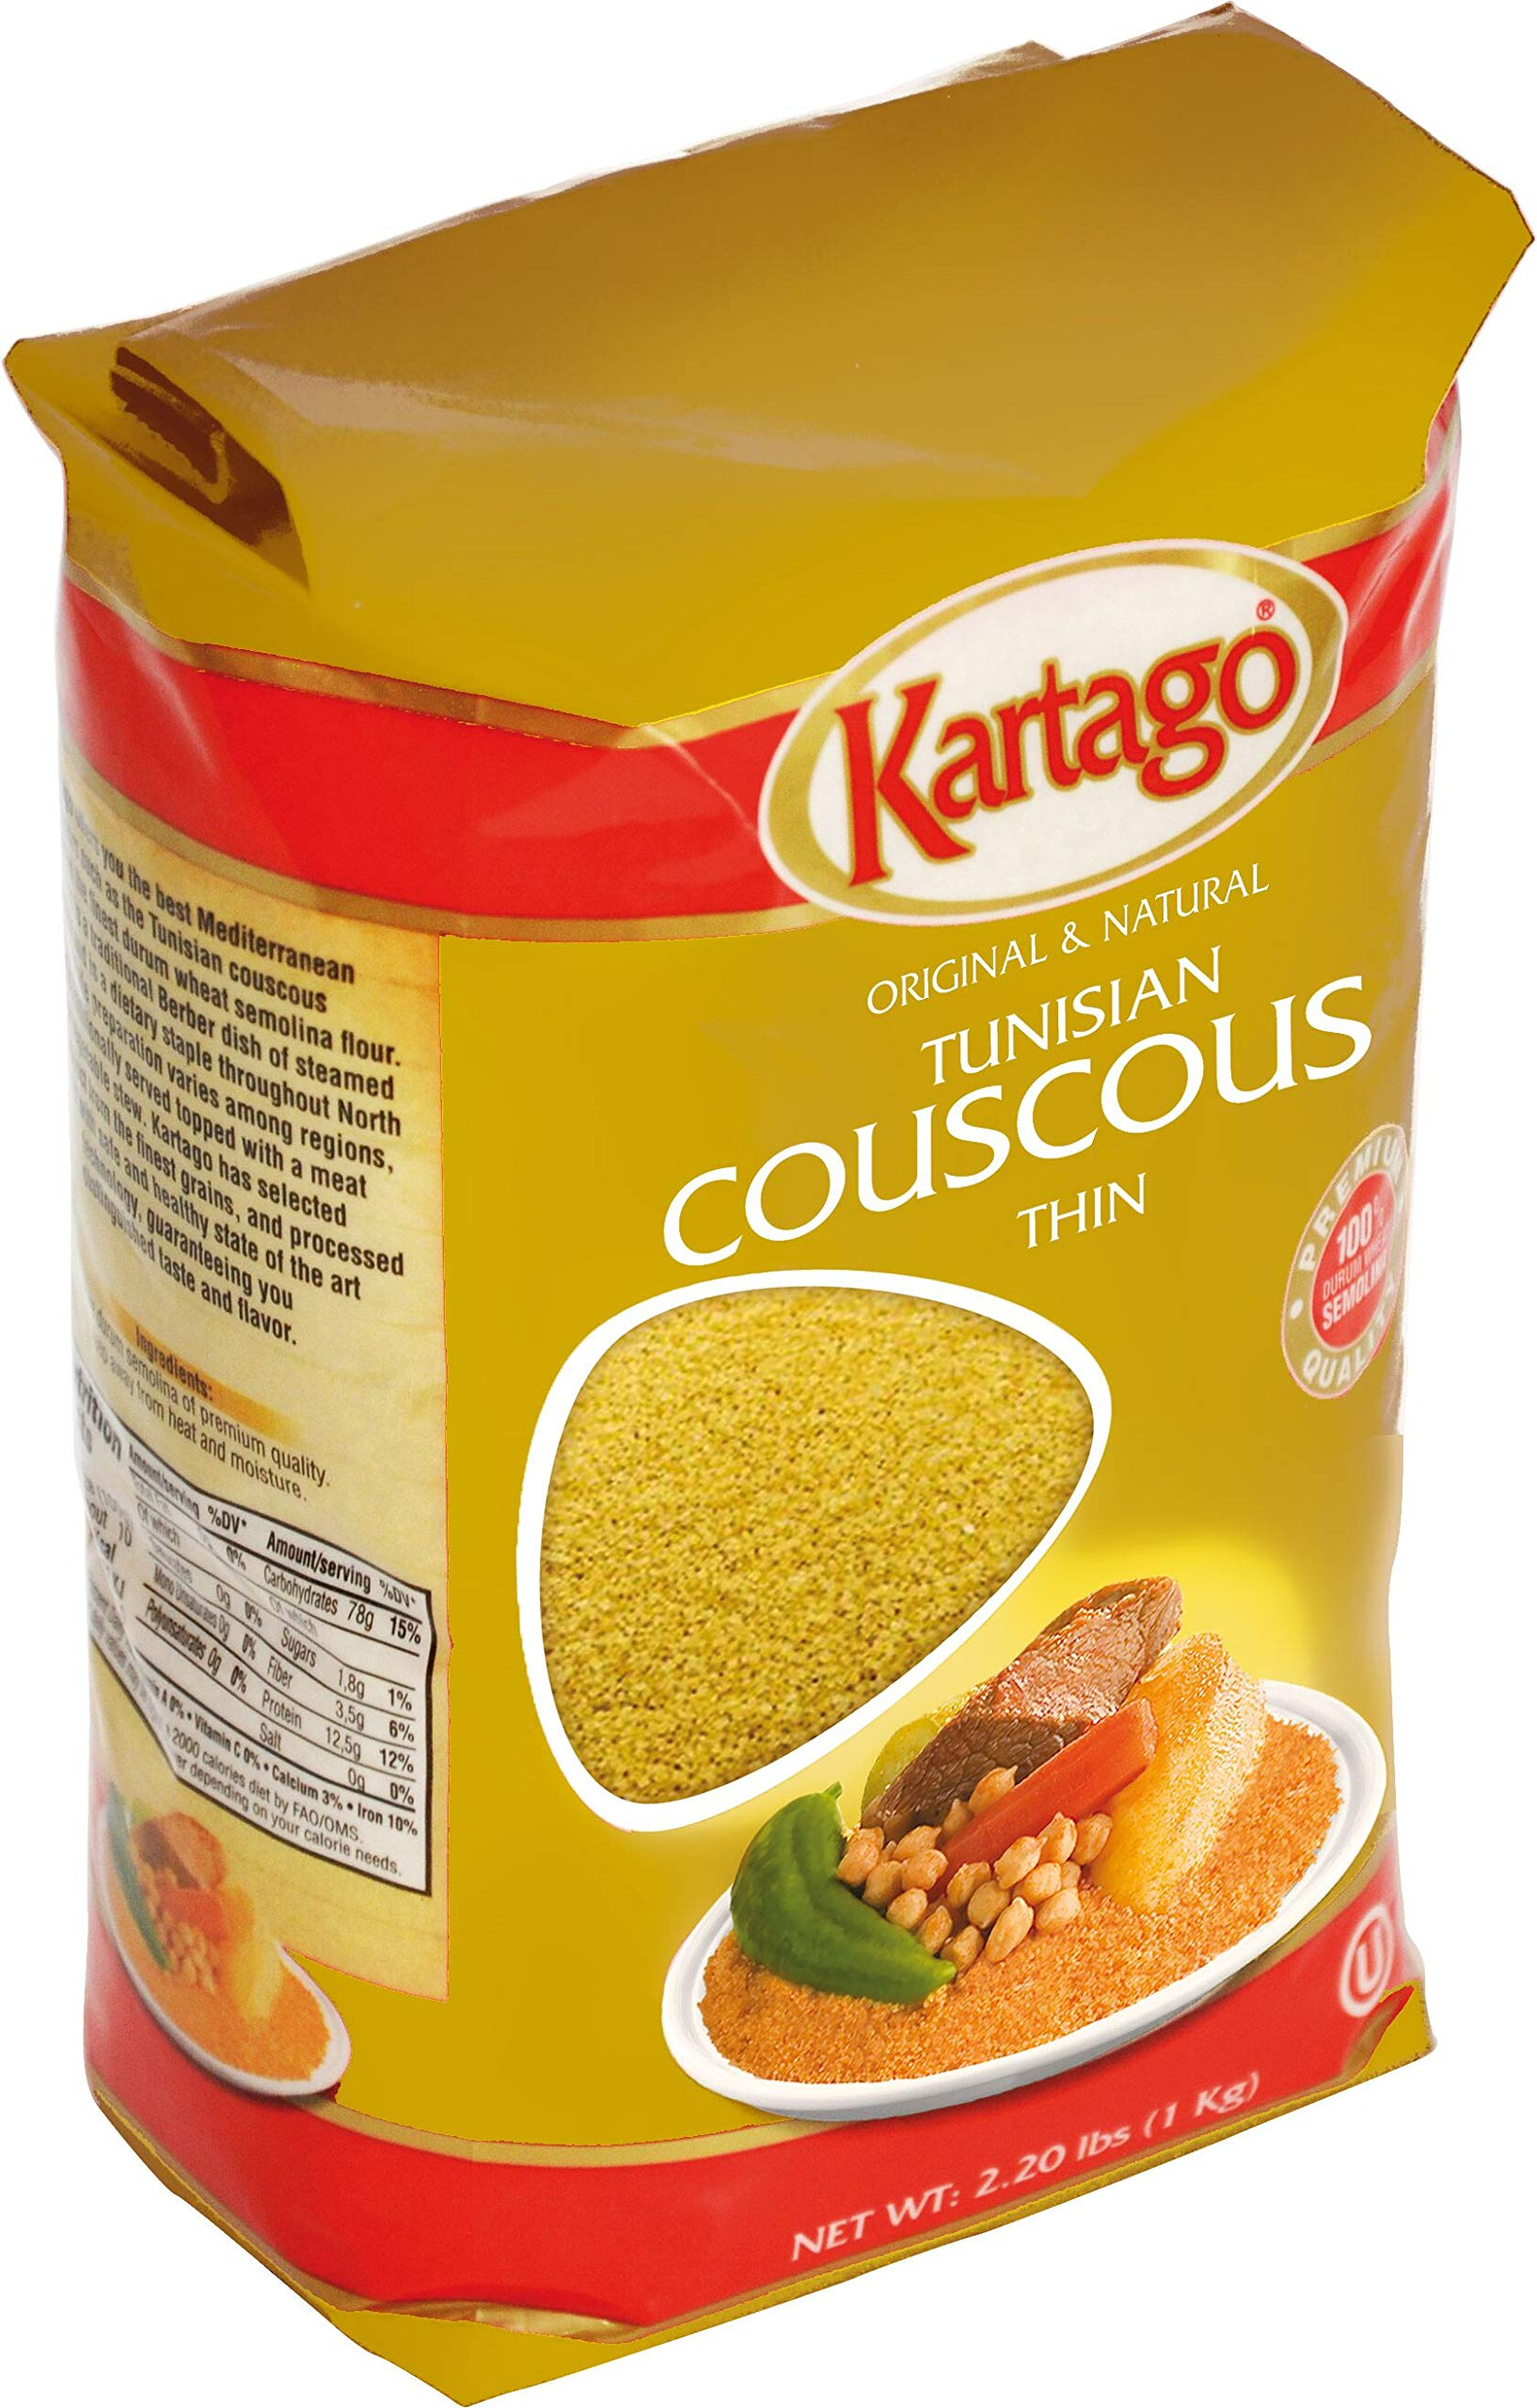 Authentic Tunisian Couscous - Thin Grain - 1-Kg Bag, Pack of 2 by Kartago